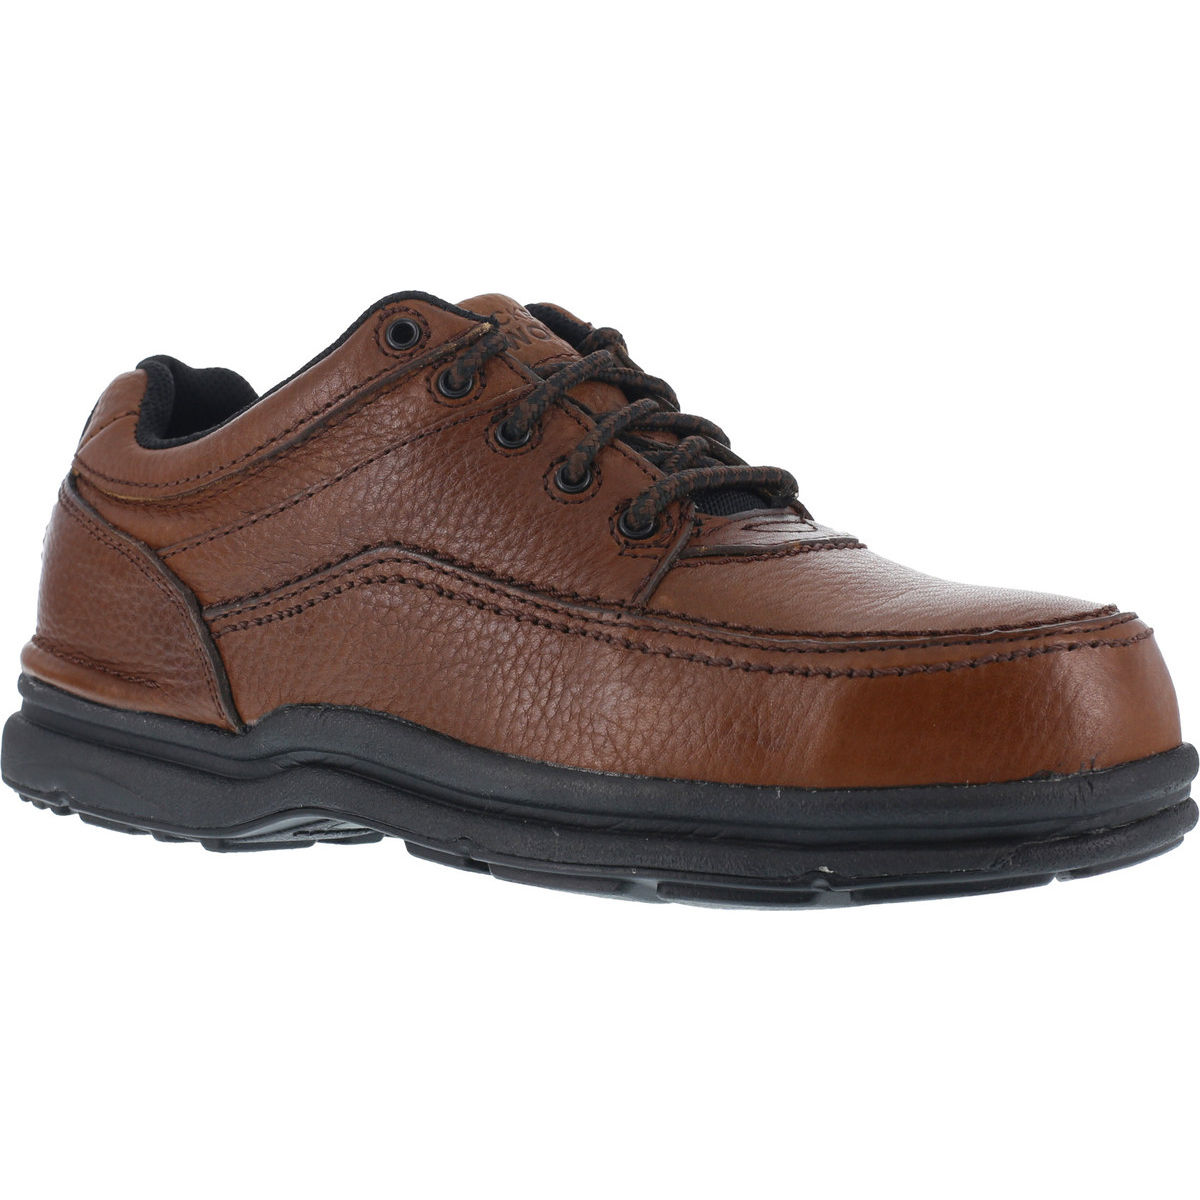 Rockport Works Men's World Tour Steel Toe 5 Eye Tie Casual Moc Toe Oxford Shoe - Brown, 10